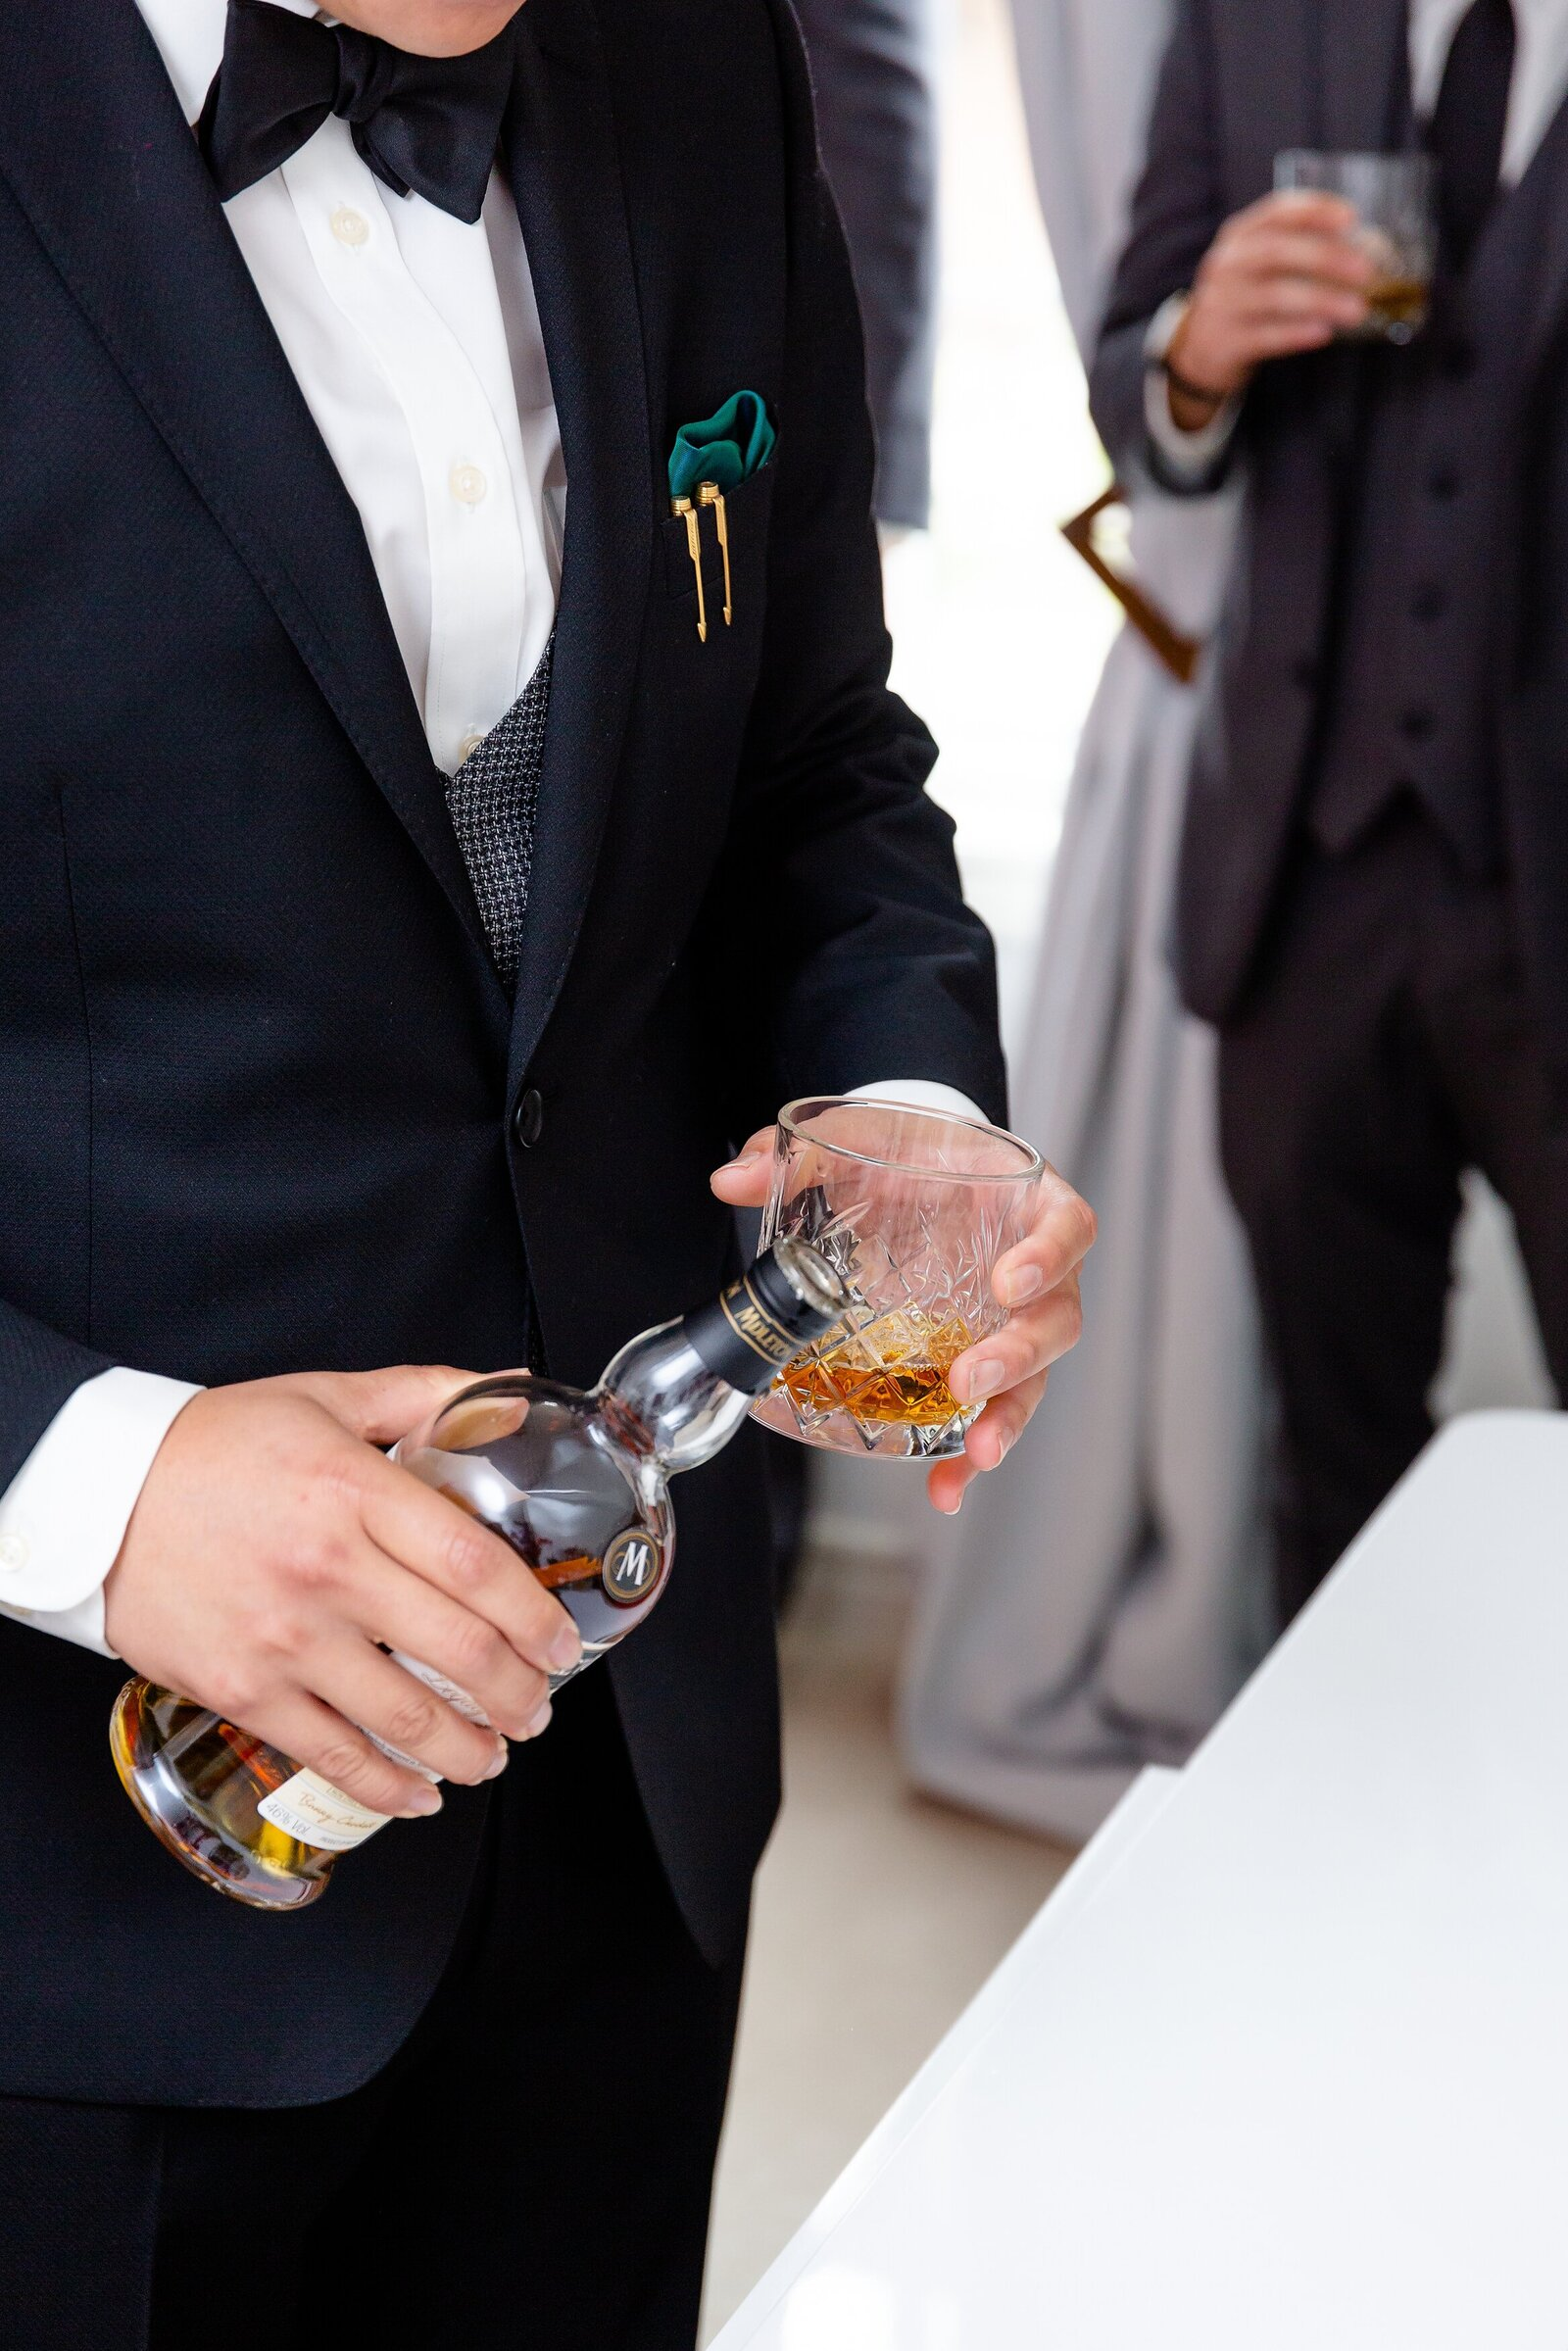 Groom-pours-glasses-of-whiskey-for-him-and-his-groomsmen